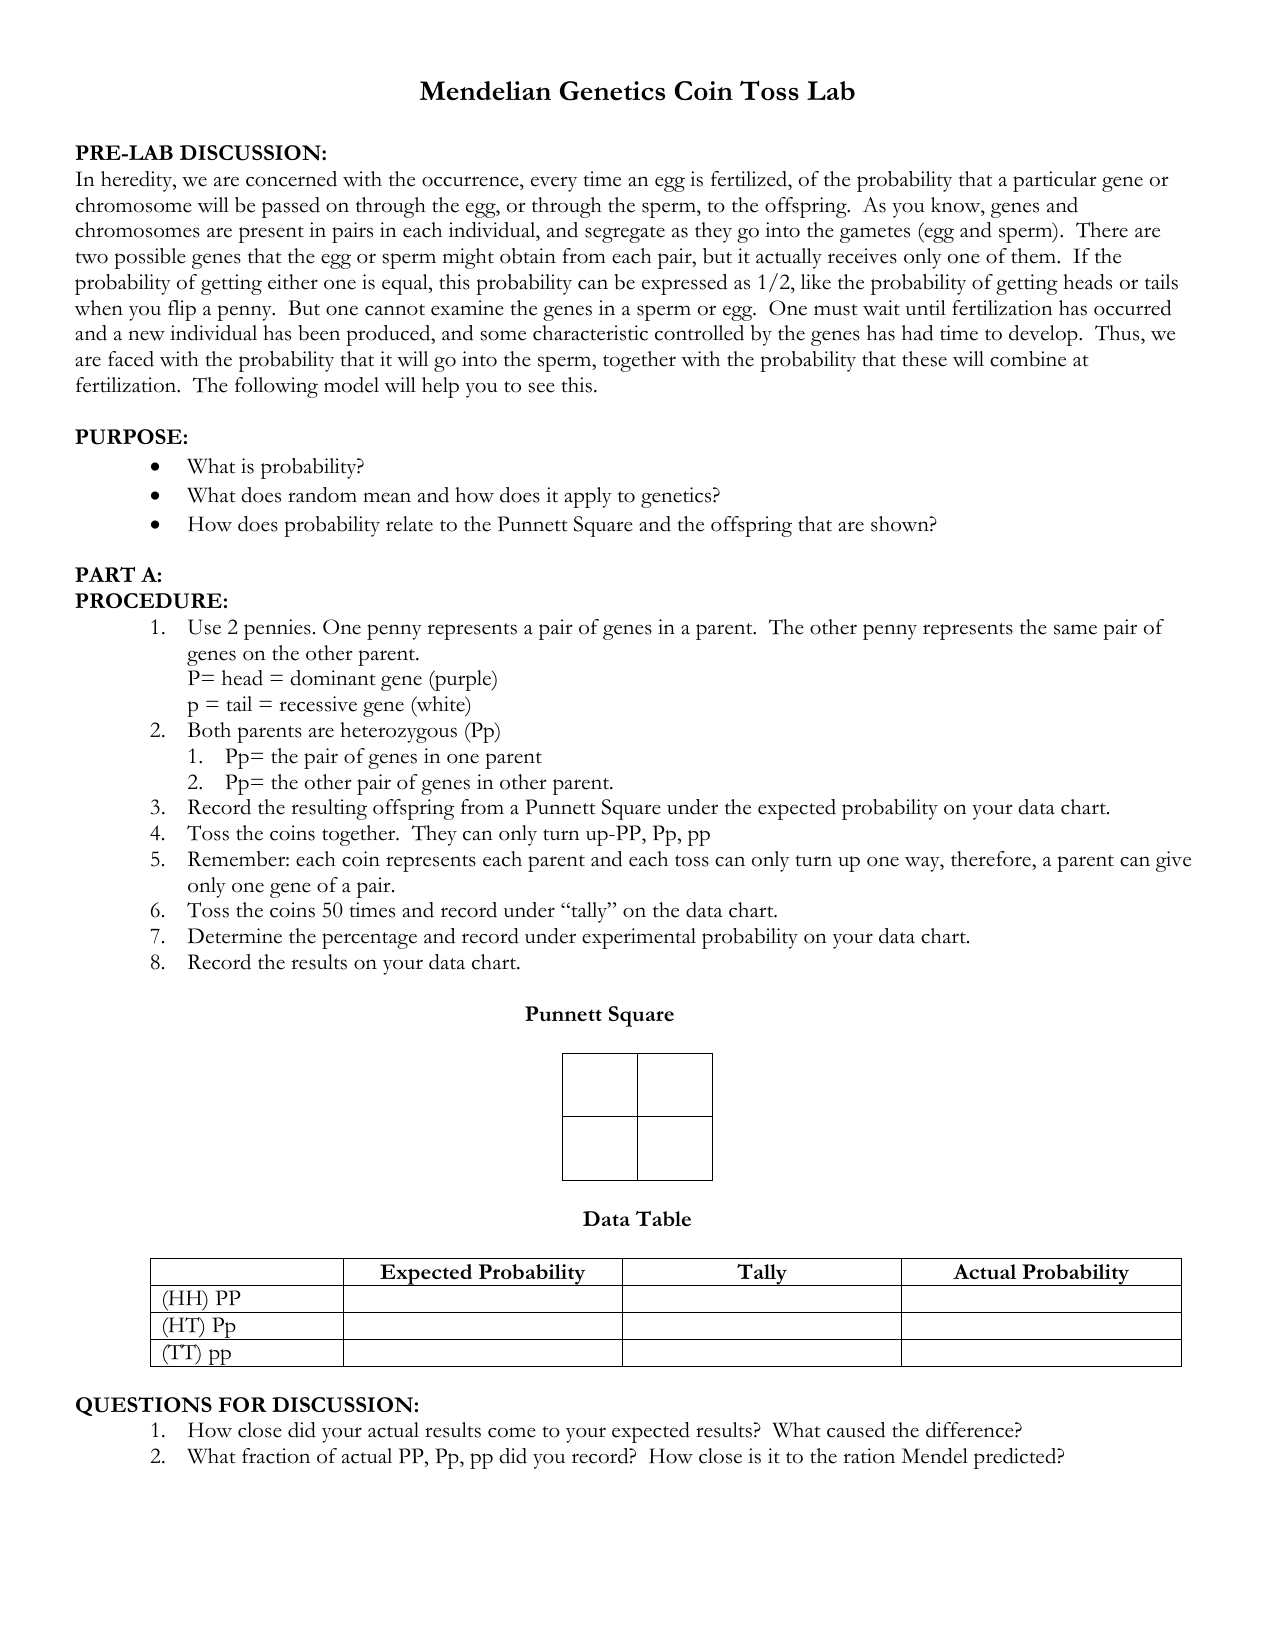 Mendelian Ge ics Worksheet Winonarasheed     SlideHD CO together with Mendelian Ge ics Coin Toss Lab additionally  besides  likewise ge ic problems worksheet with answers mendelian ge ics together with Images of Mendelian Ge ics Worksheet Answer Key    rock cafe in addition  likewise worksheets  Ge ics Worksheet For Chapter Ge ic And Beyond in addition  also Mendelian Ge ics Worksheet Answers   Siteraven as well  together with Mendelian Ge ics Study Resources moreover 27 Elegant Mendelian Ge ics Worksheet Images   Business Ideas furthermore Mendelian Ge ics Worksheet Answers   Siteraven as well Heredity   Ge ics Bundle   Mendelian Ge ics Activities Bundle furthermore Mendelian Ge ics Worksheet Answers Inspirational Simple Ge ics. on mendelian genetics worksheet answer key